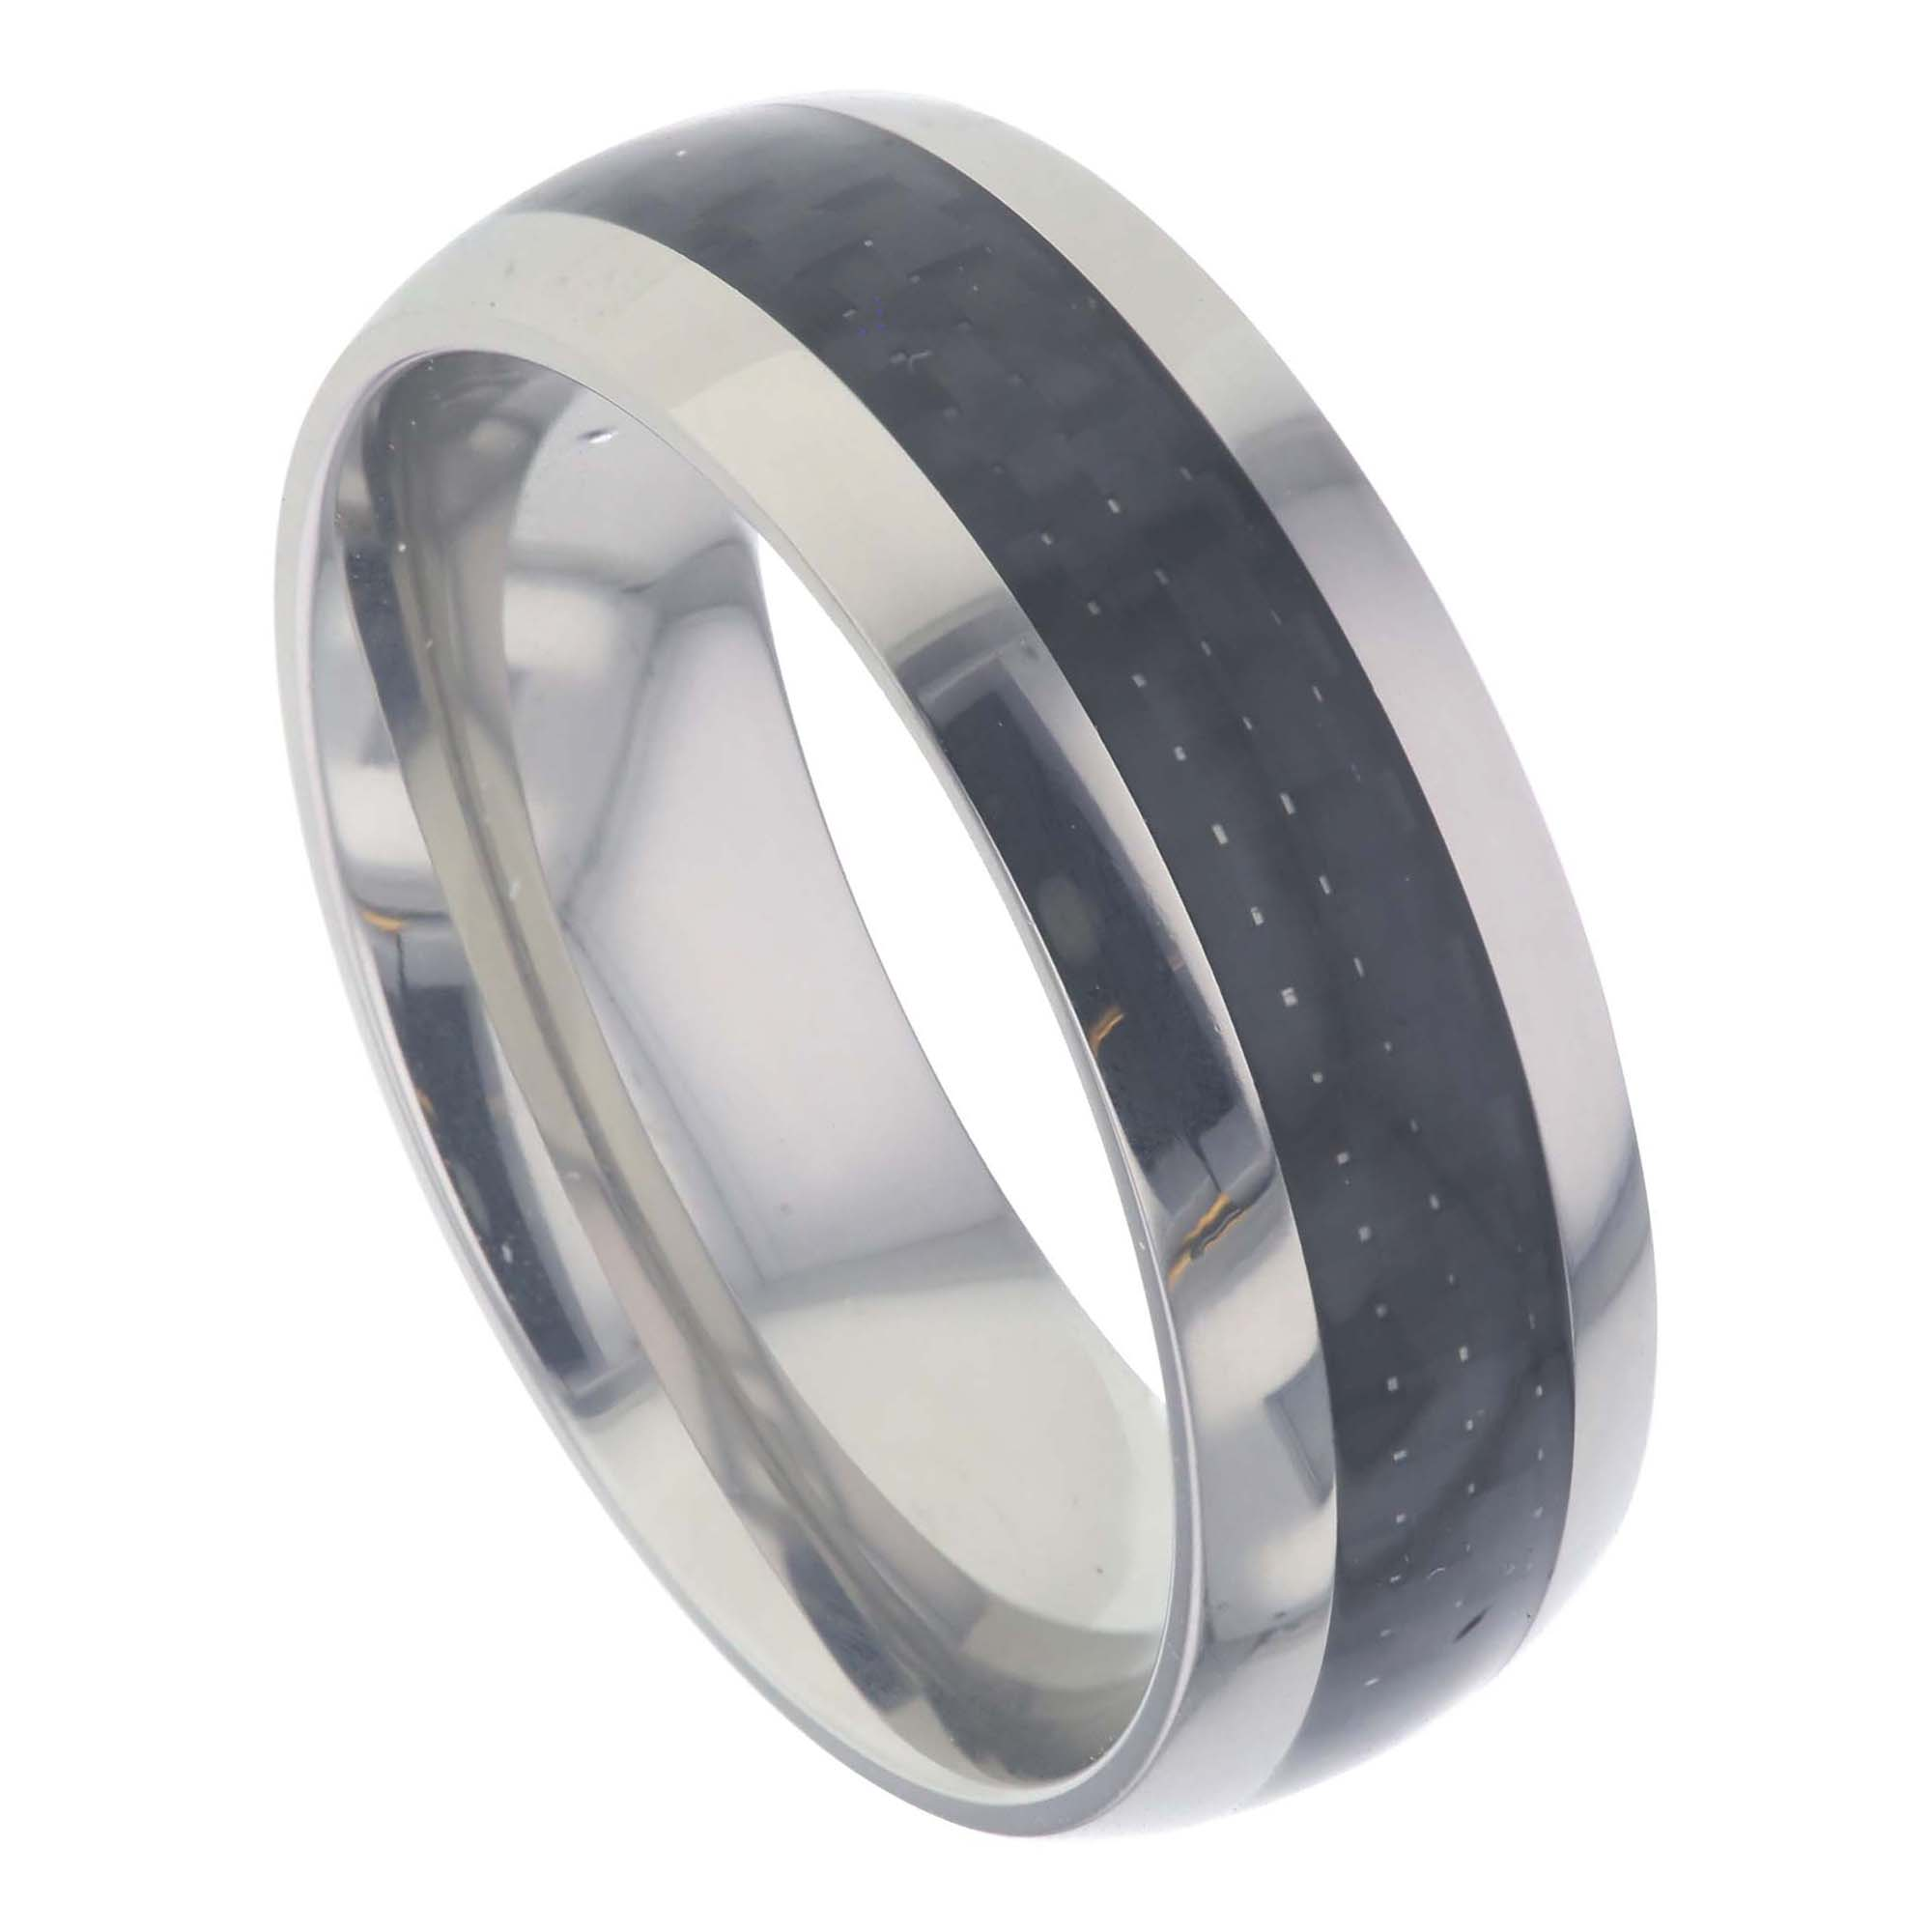 zoom hover to jared sterling ring tw cut bands en mv diamonds jaredstore ct round jar zm promise diamond stone silver